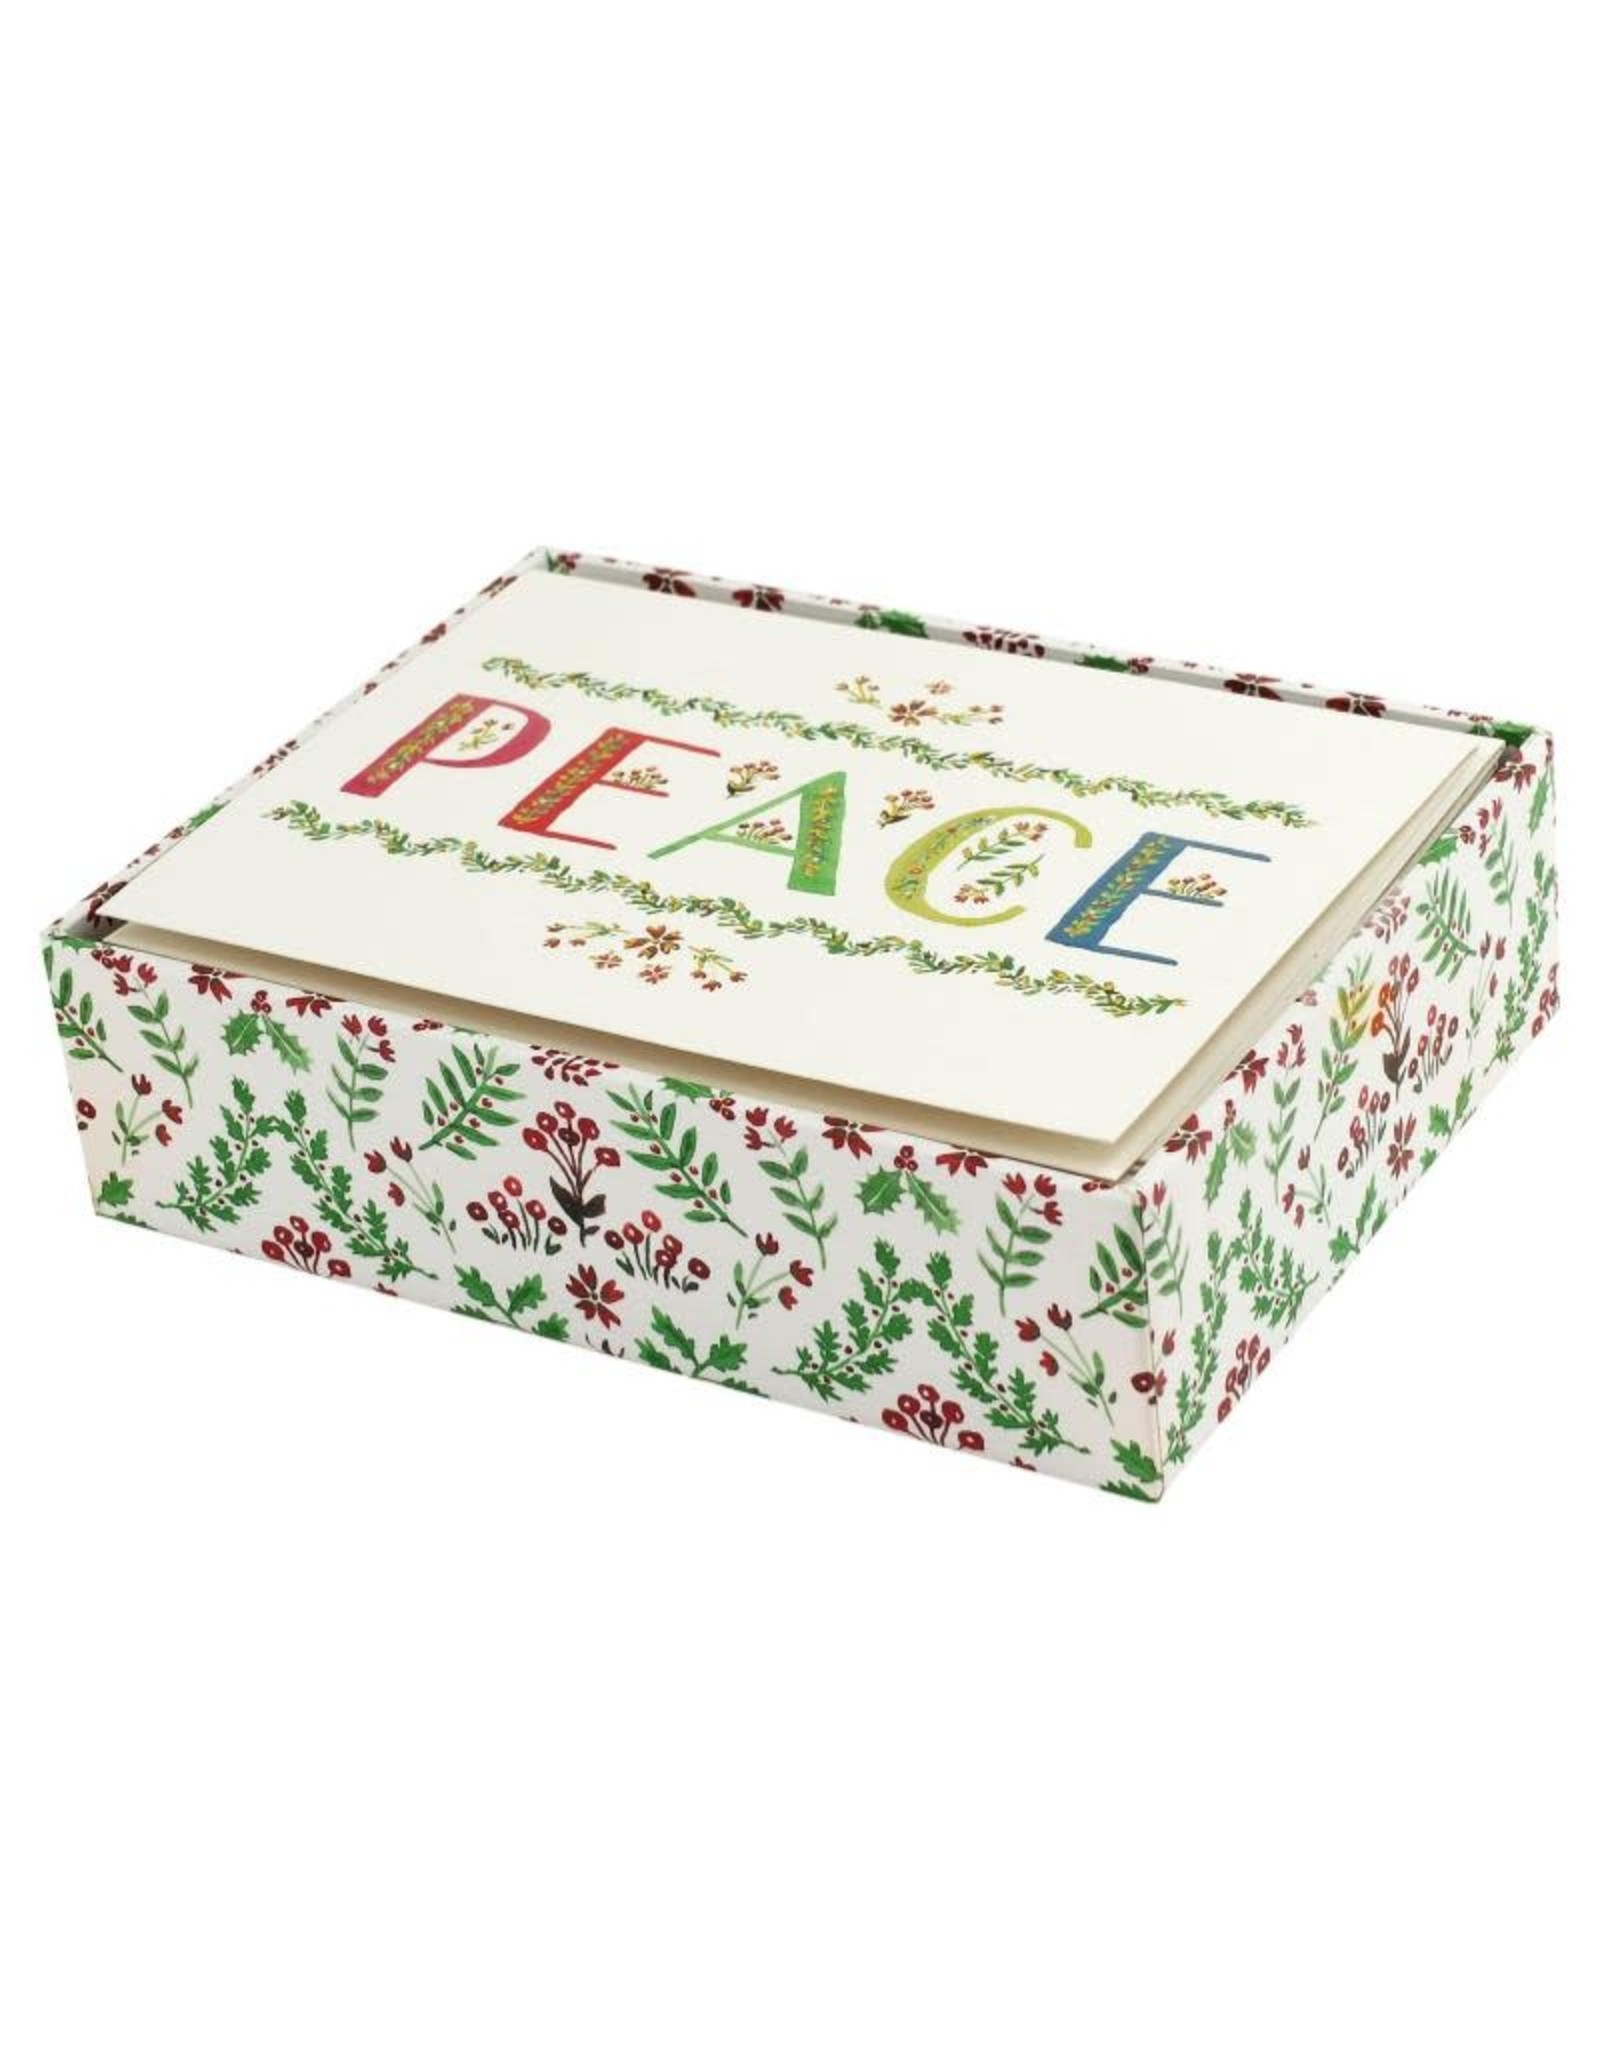 Peter Pauper Peace Boxed Holiday Cards